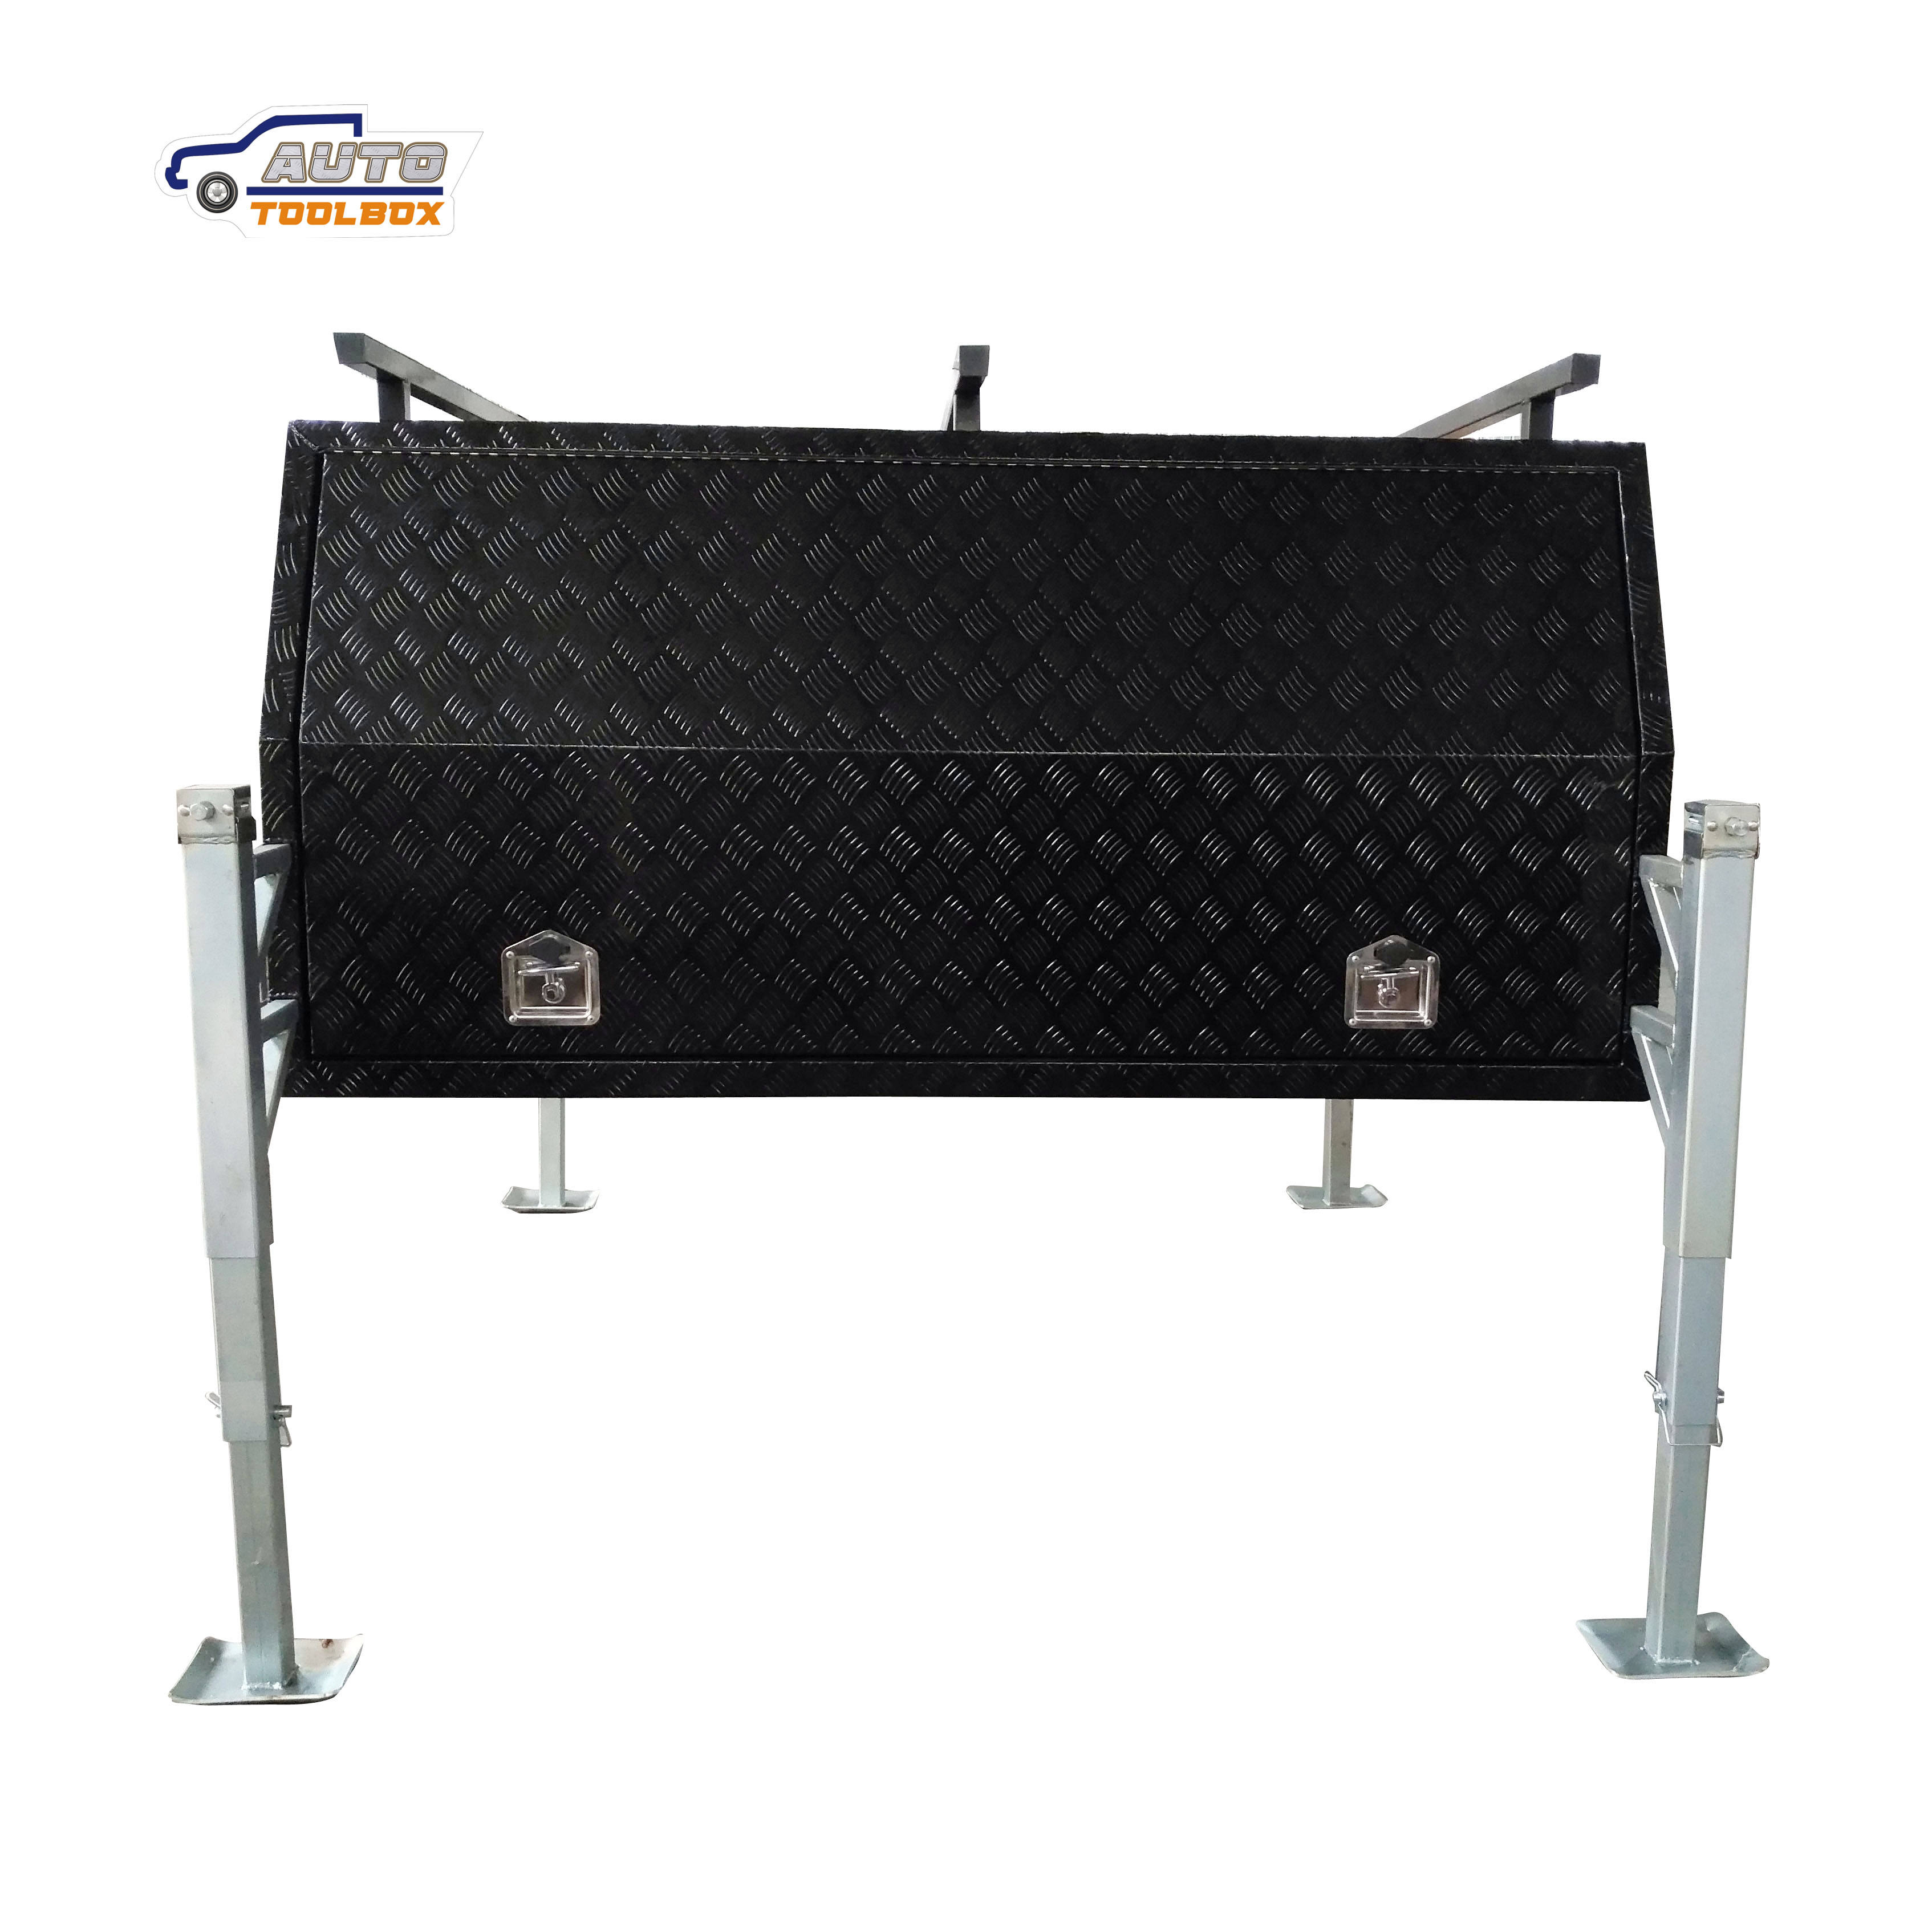 Aluminum Black Truck Tool Box Truck Canopy with three doors and racks BH-C2400JB